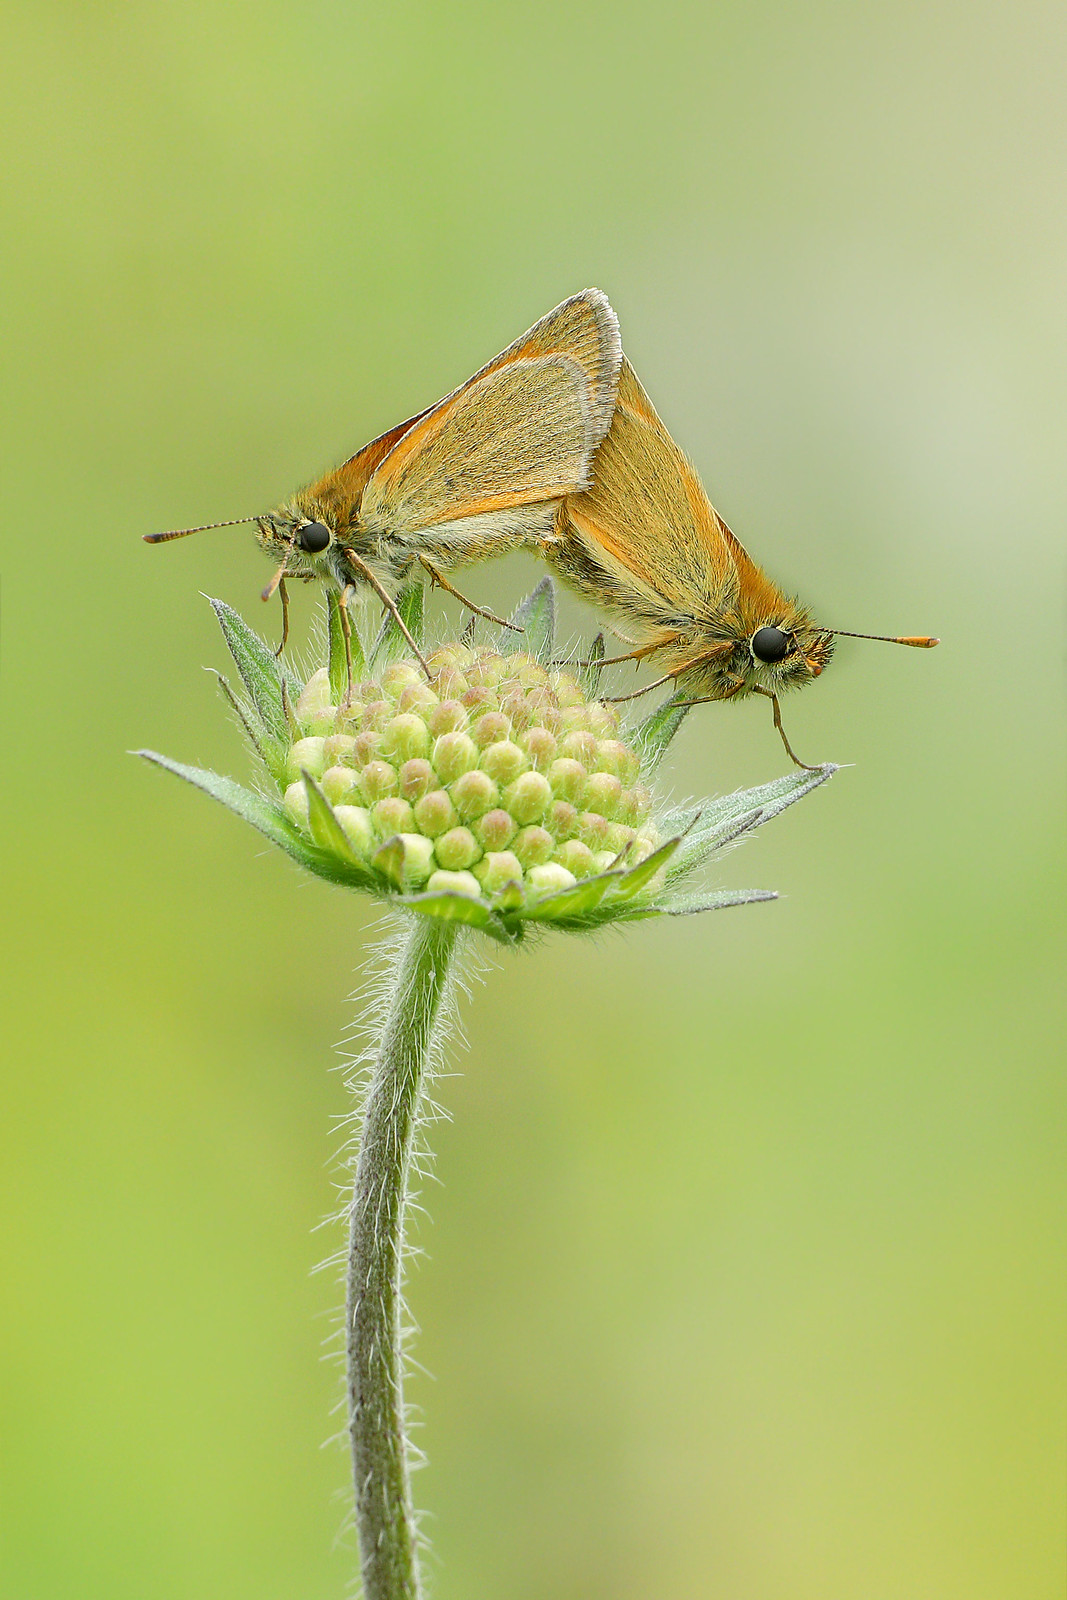 Mating Small Skippers